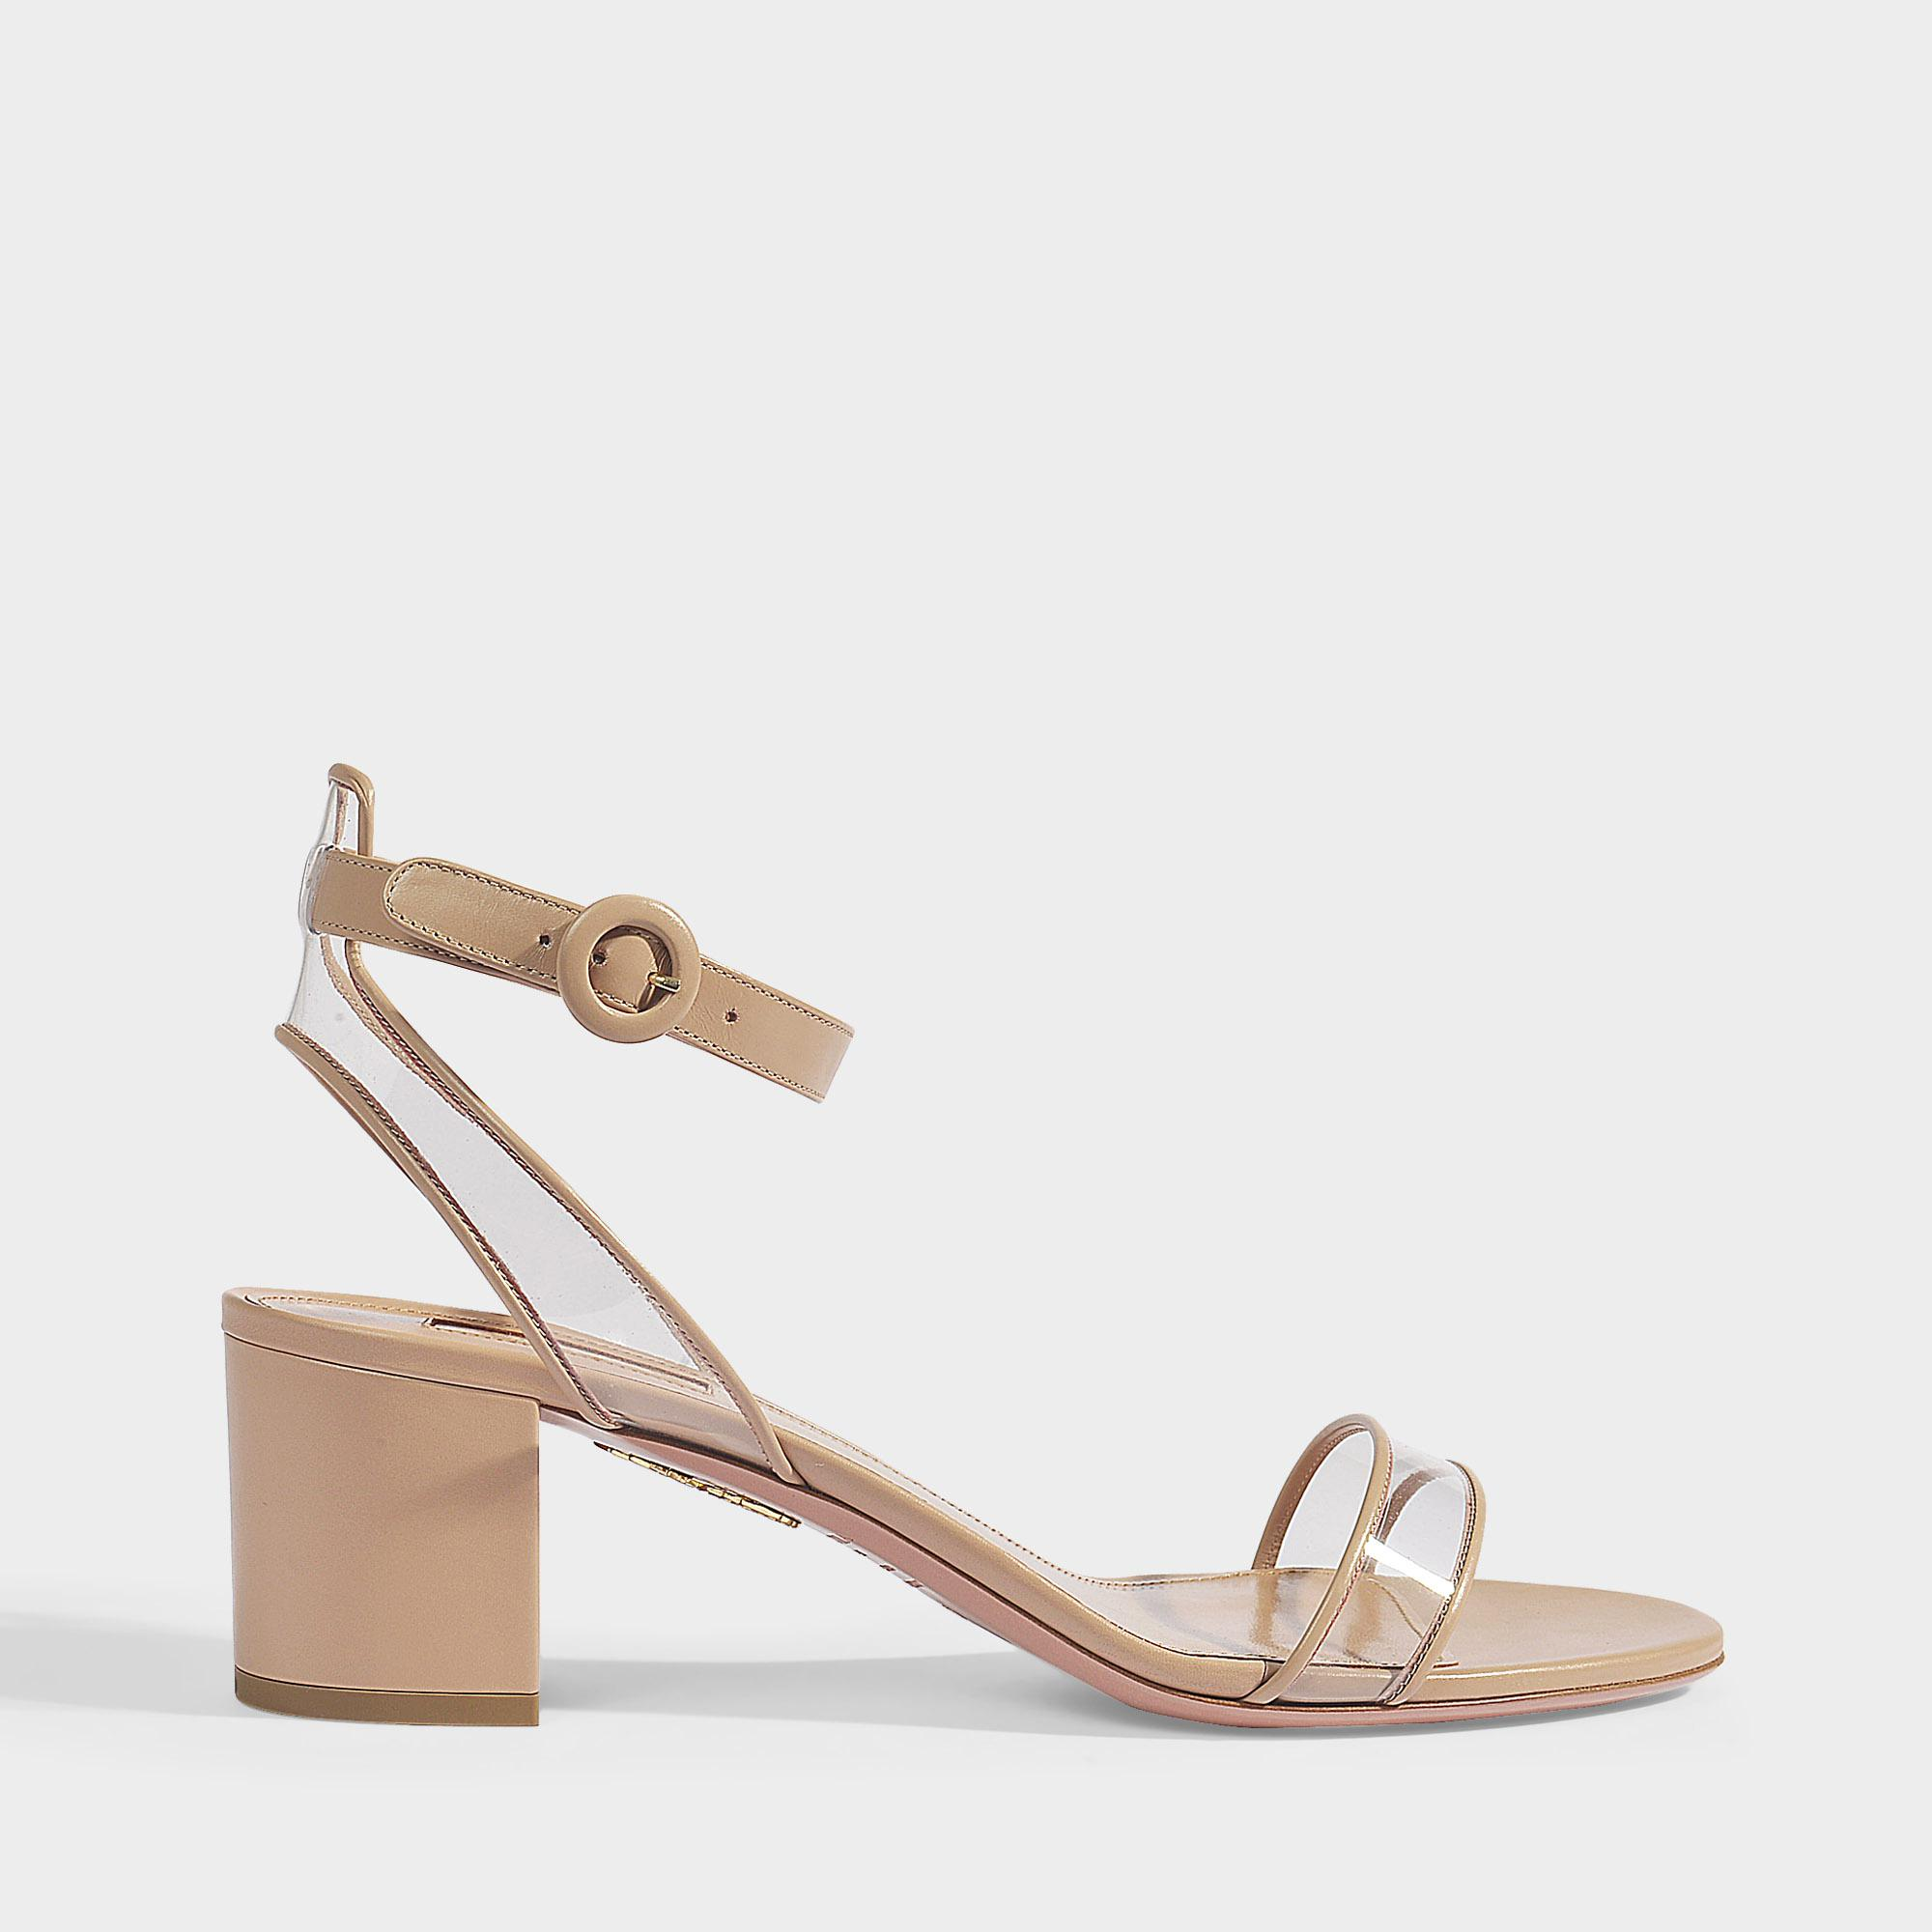 afad64cf65f Aquazzura. Women s Minimalist Sandals 50 In Powder Pink Calf Leather And Pvc